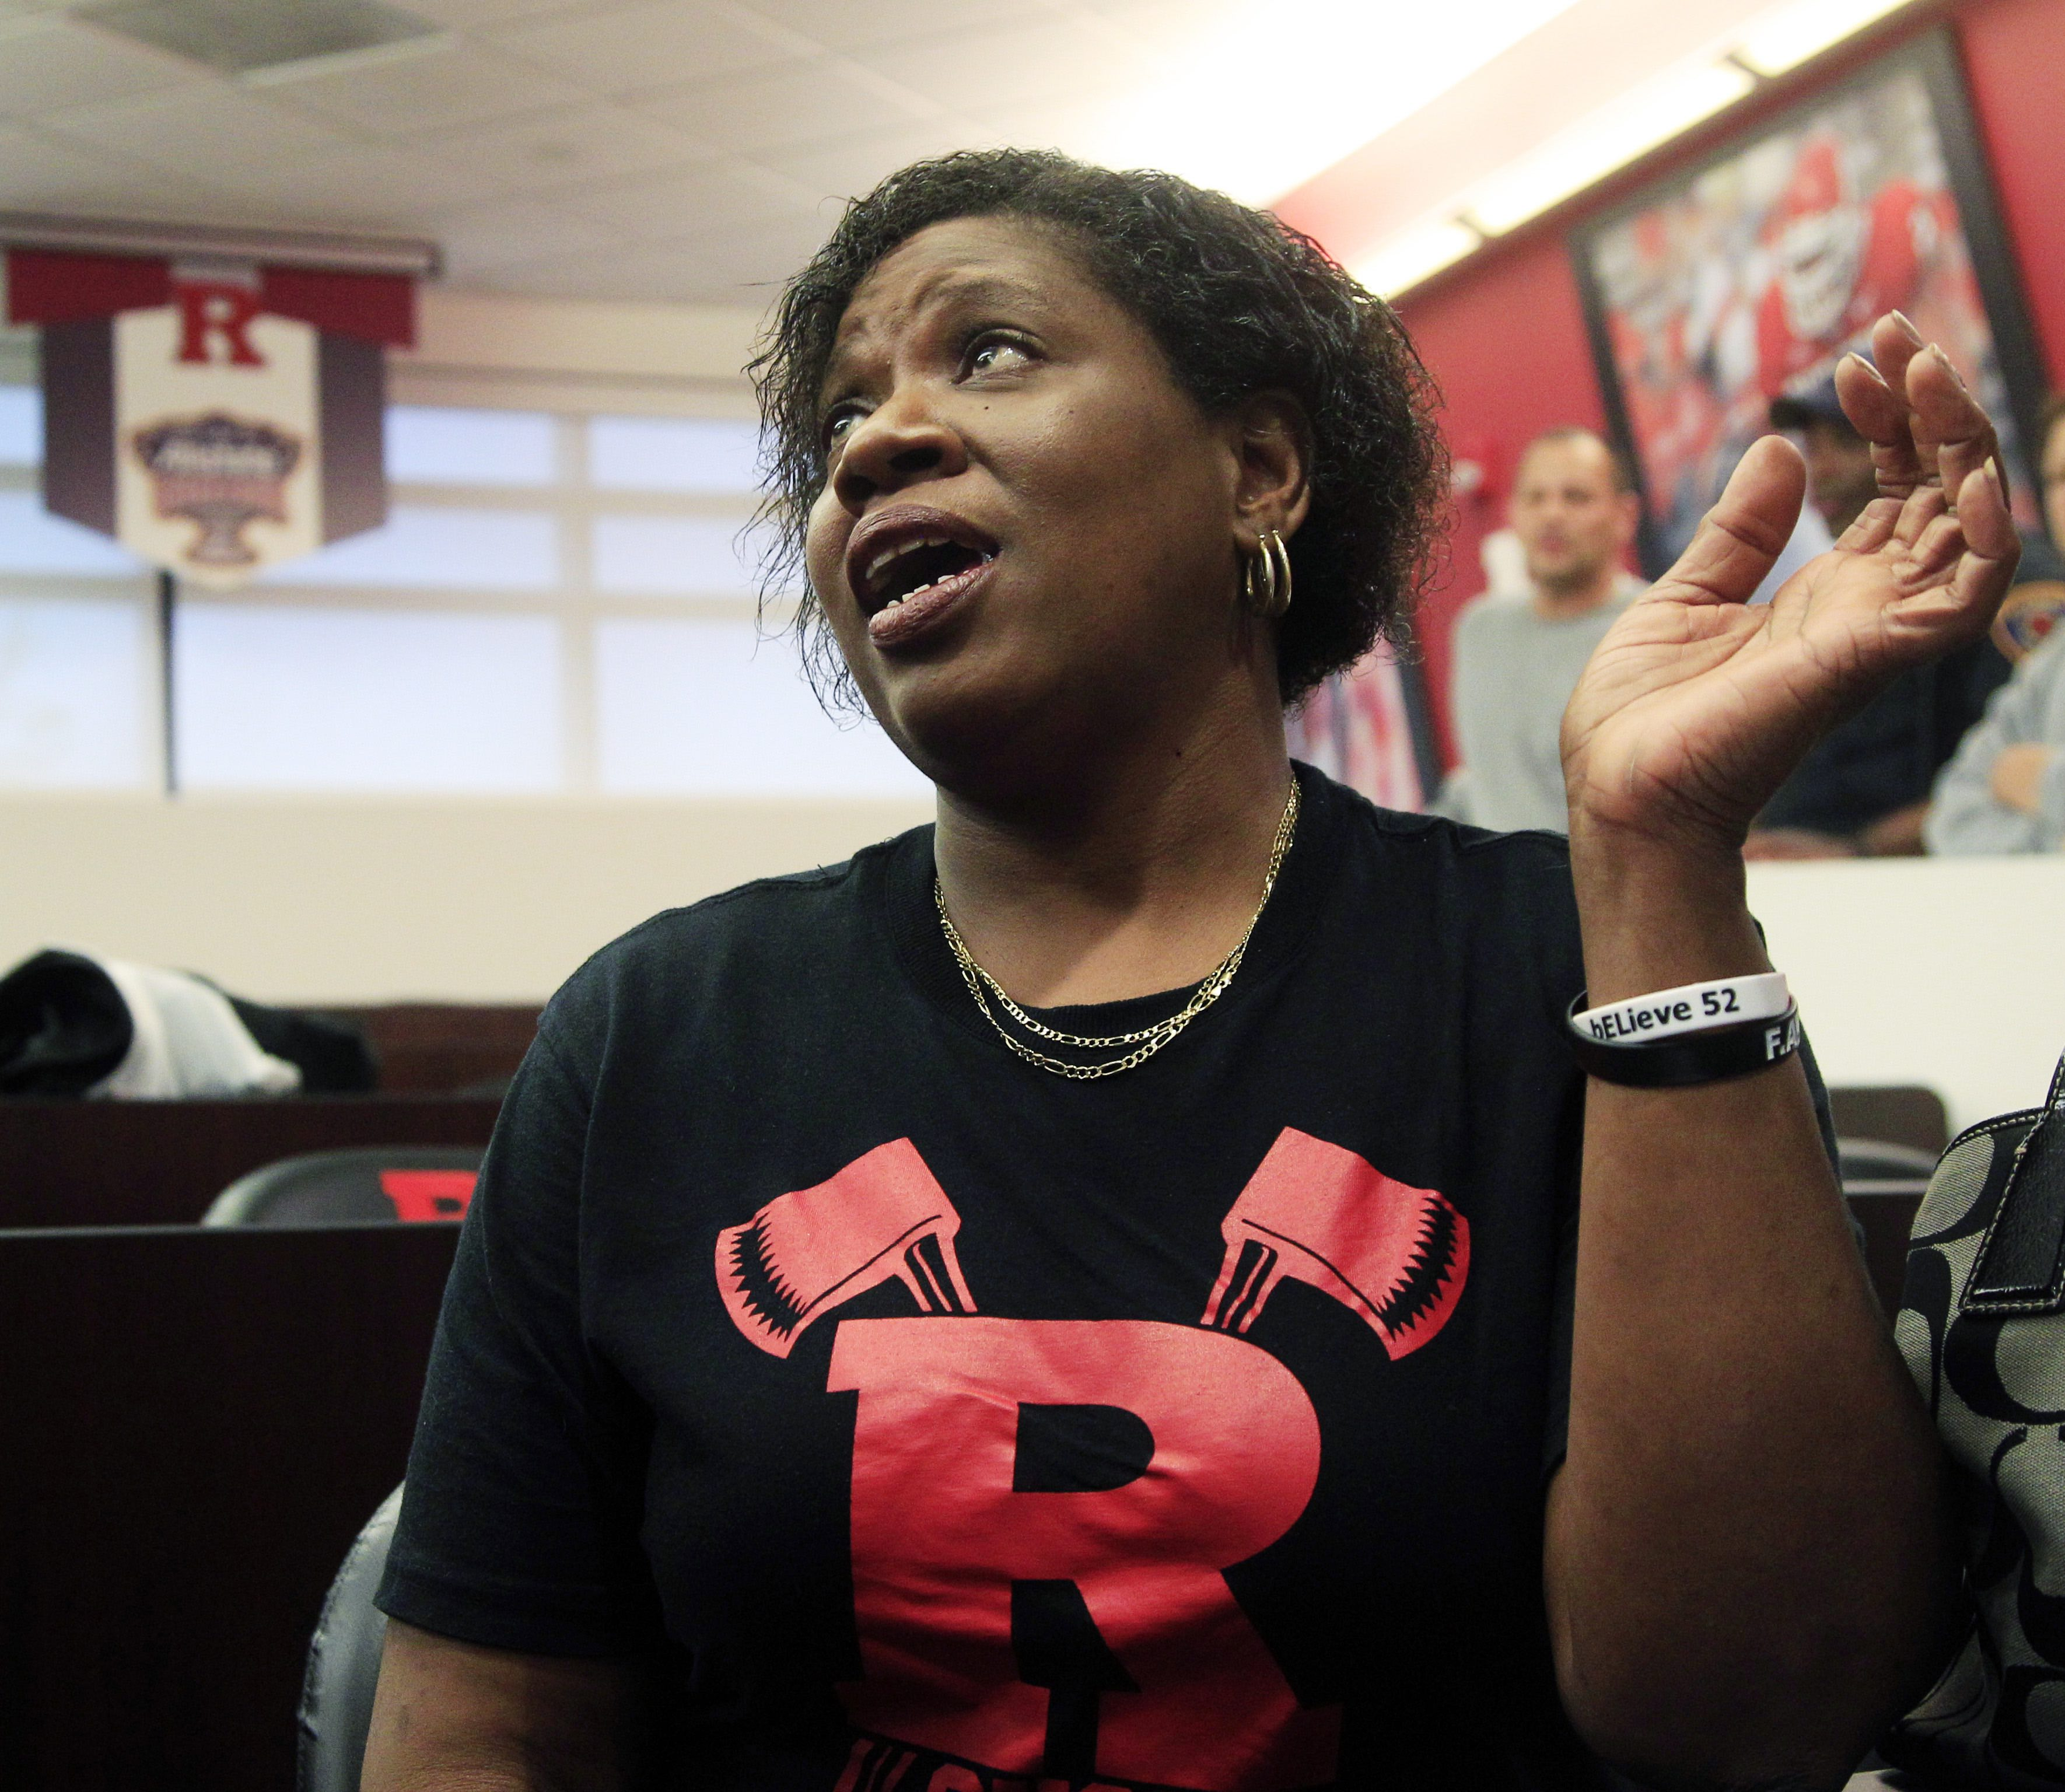 Karen LeGrand, mother of paralyzed former Rutgers defensive tackle Eric LeGrand, sits in Piscataway, N.J., Wednesday, May 2, 2012, as she describes how hard it was to keep a secret from her son after his former coach Greg Schiano, now coach of the Tampa Bay Buccaneers, called to tell her that he was planning to sign Eric to the NFL football team. LeGrand broke two vertebrae and suffered a serious spinal cord injury on Oct. 16, 2010, during a kickoff return against Army. (AP Photo/Mel Evans)